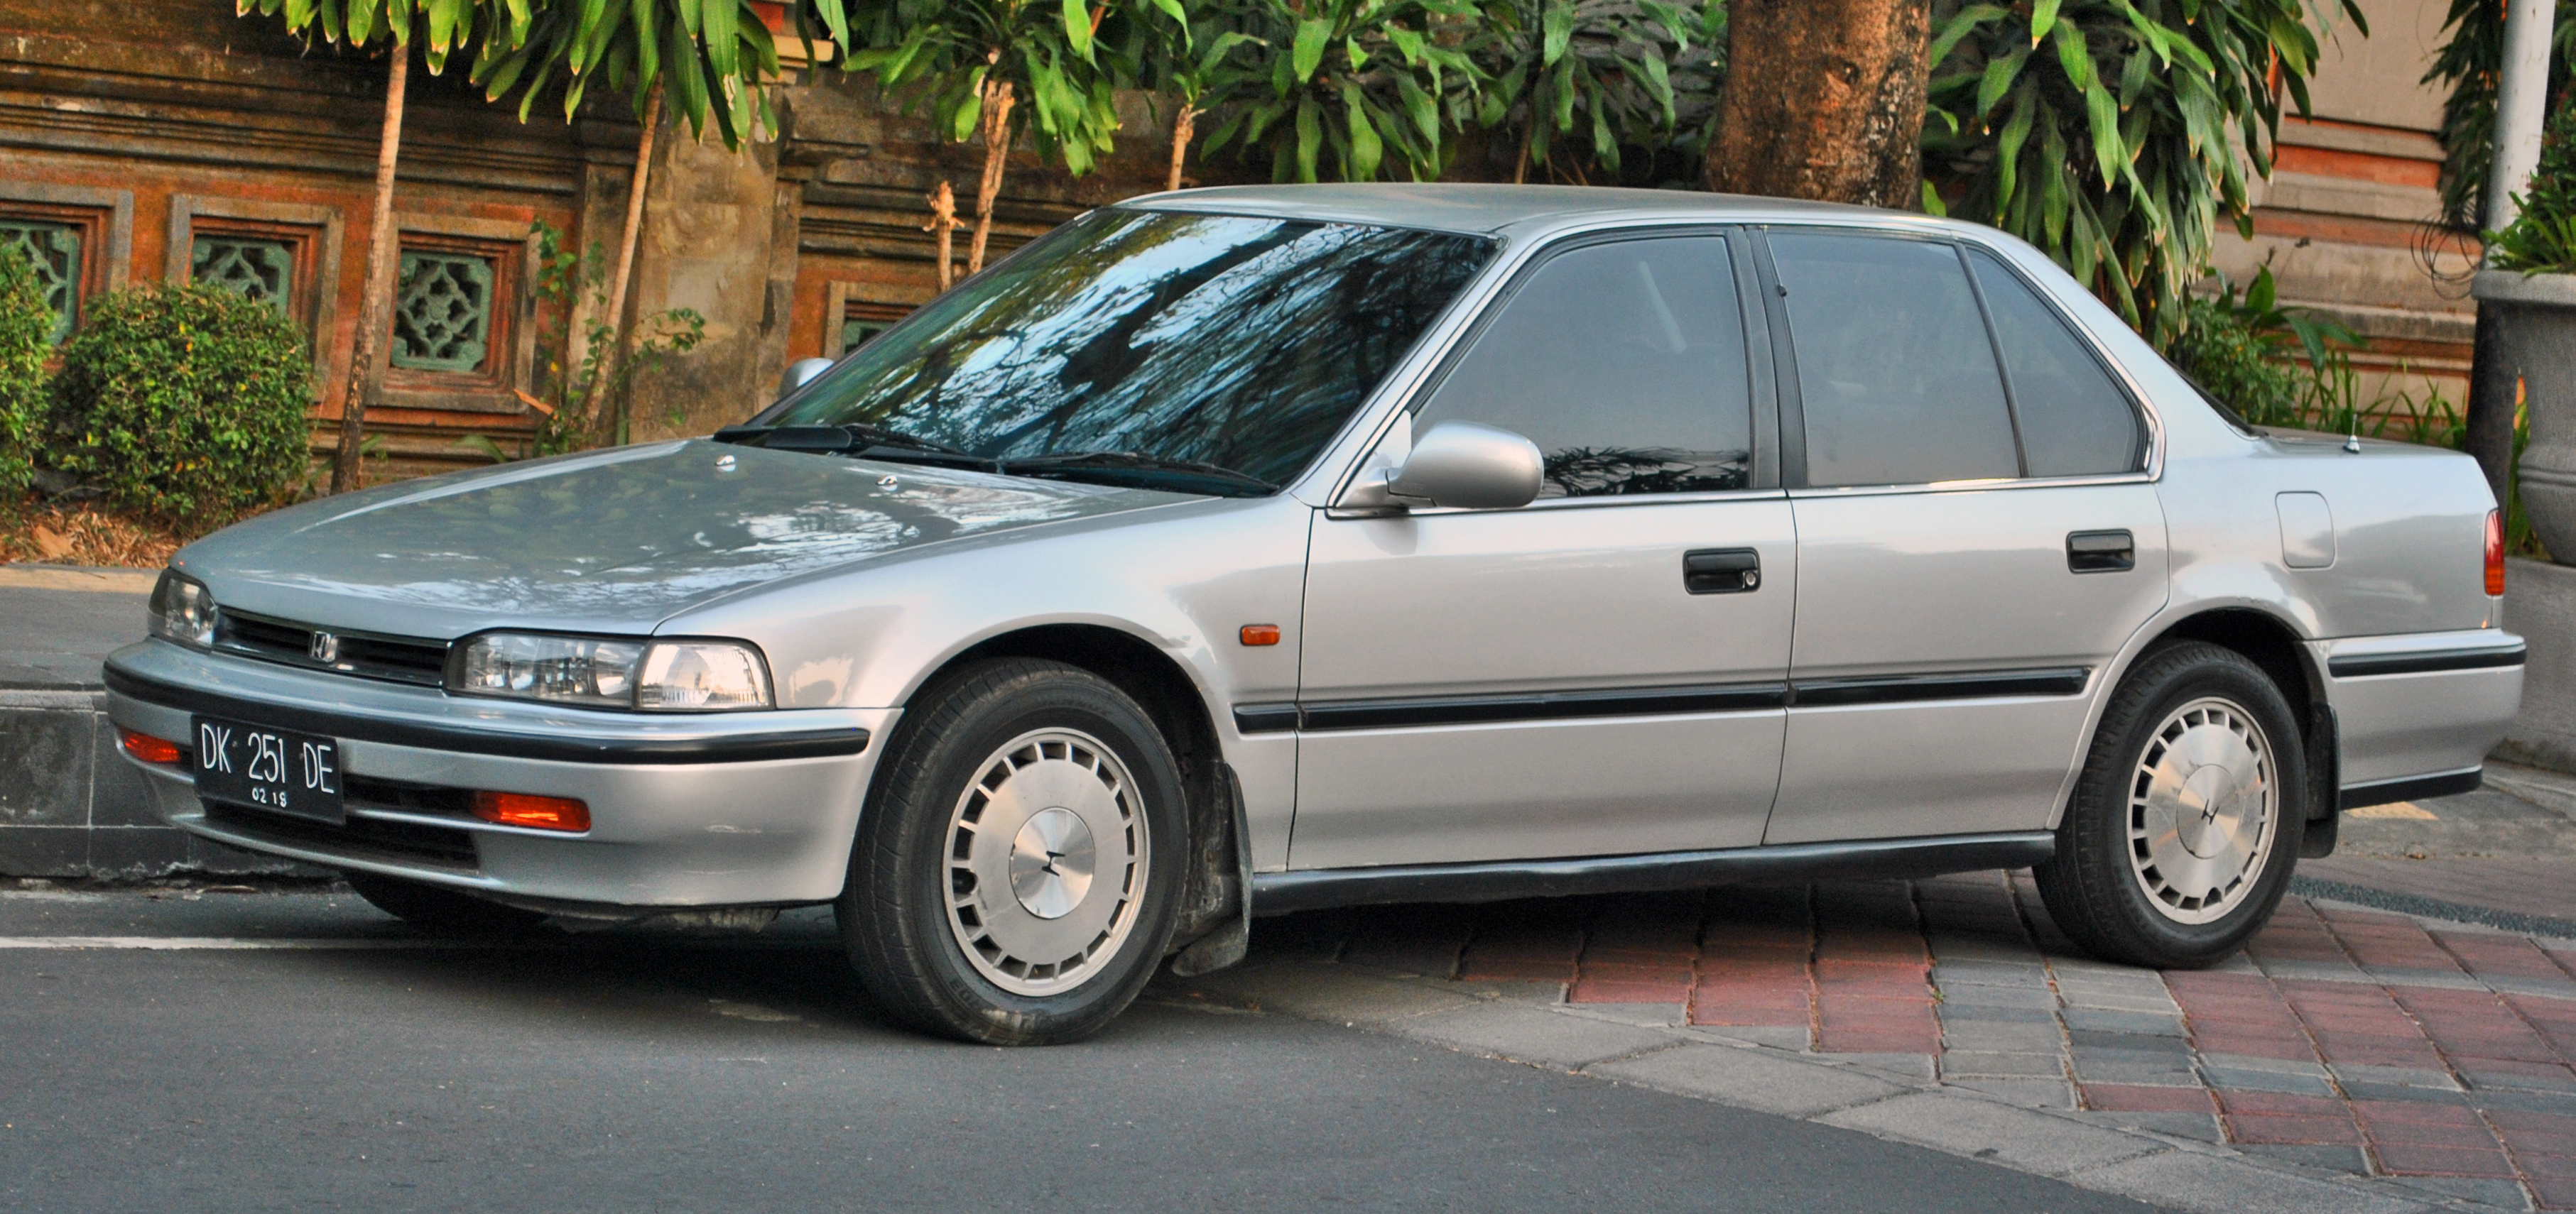 file:honda accord maestro (front), denpasar - wikimedia commons